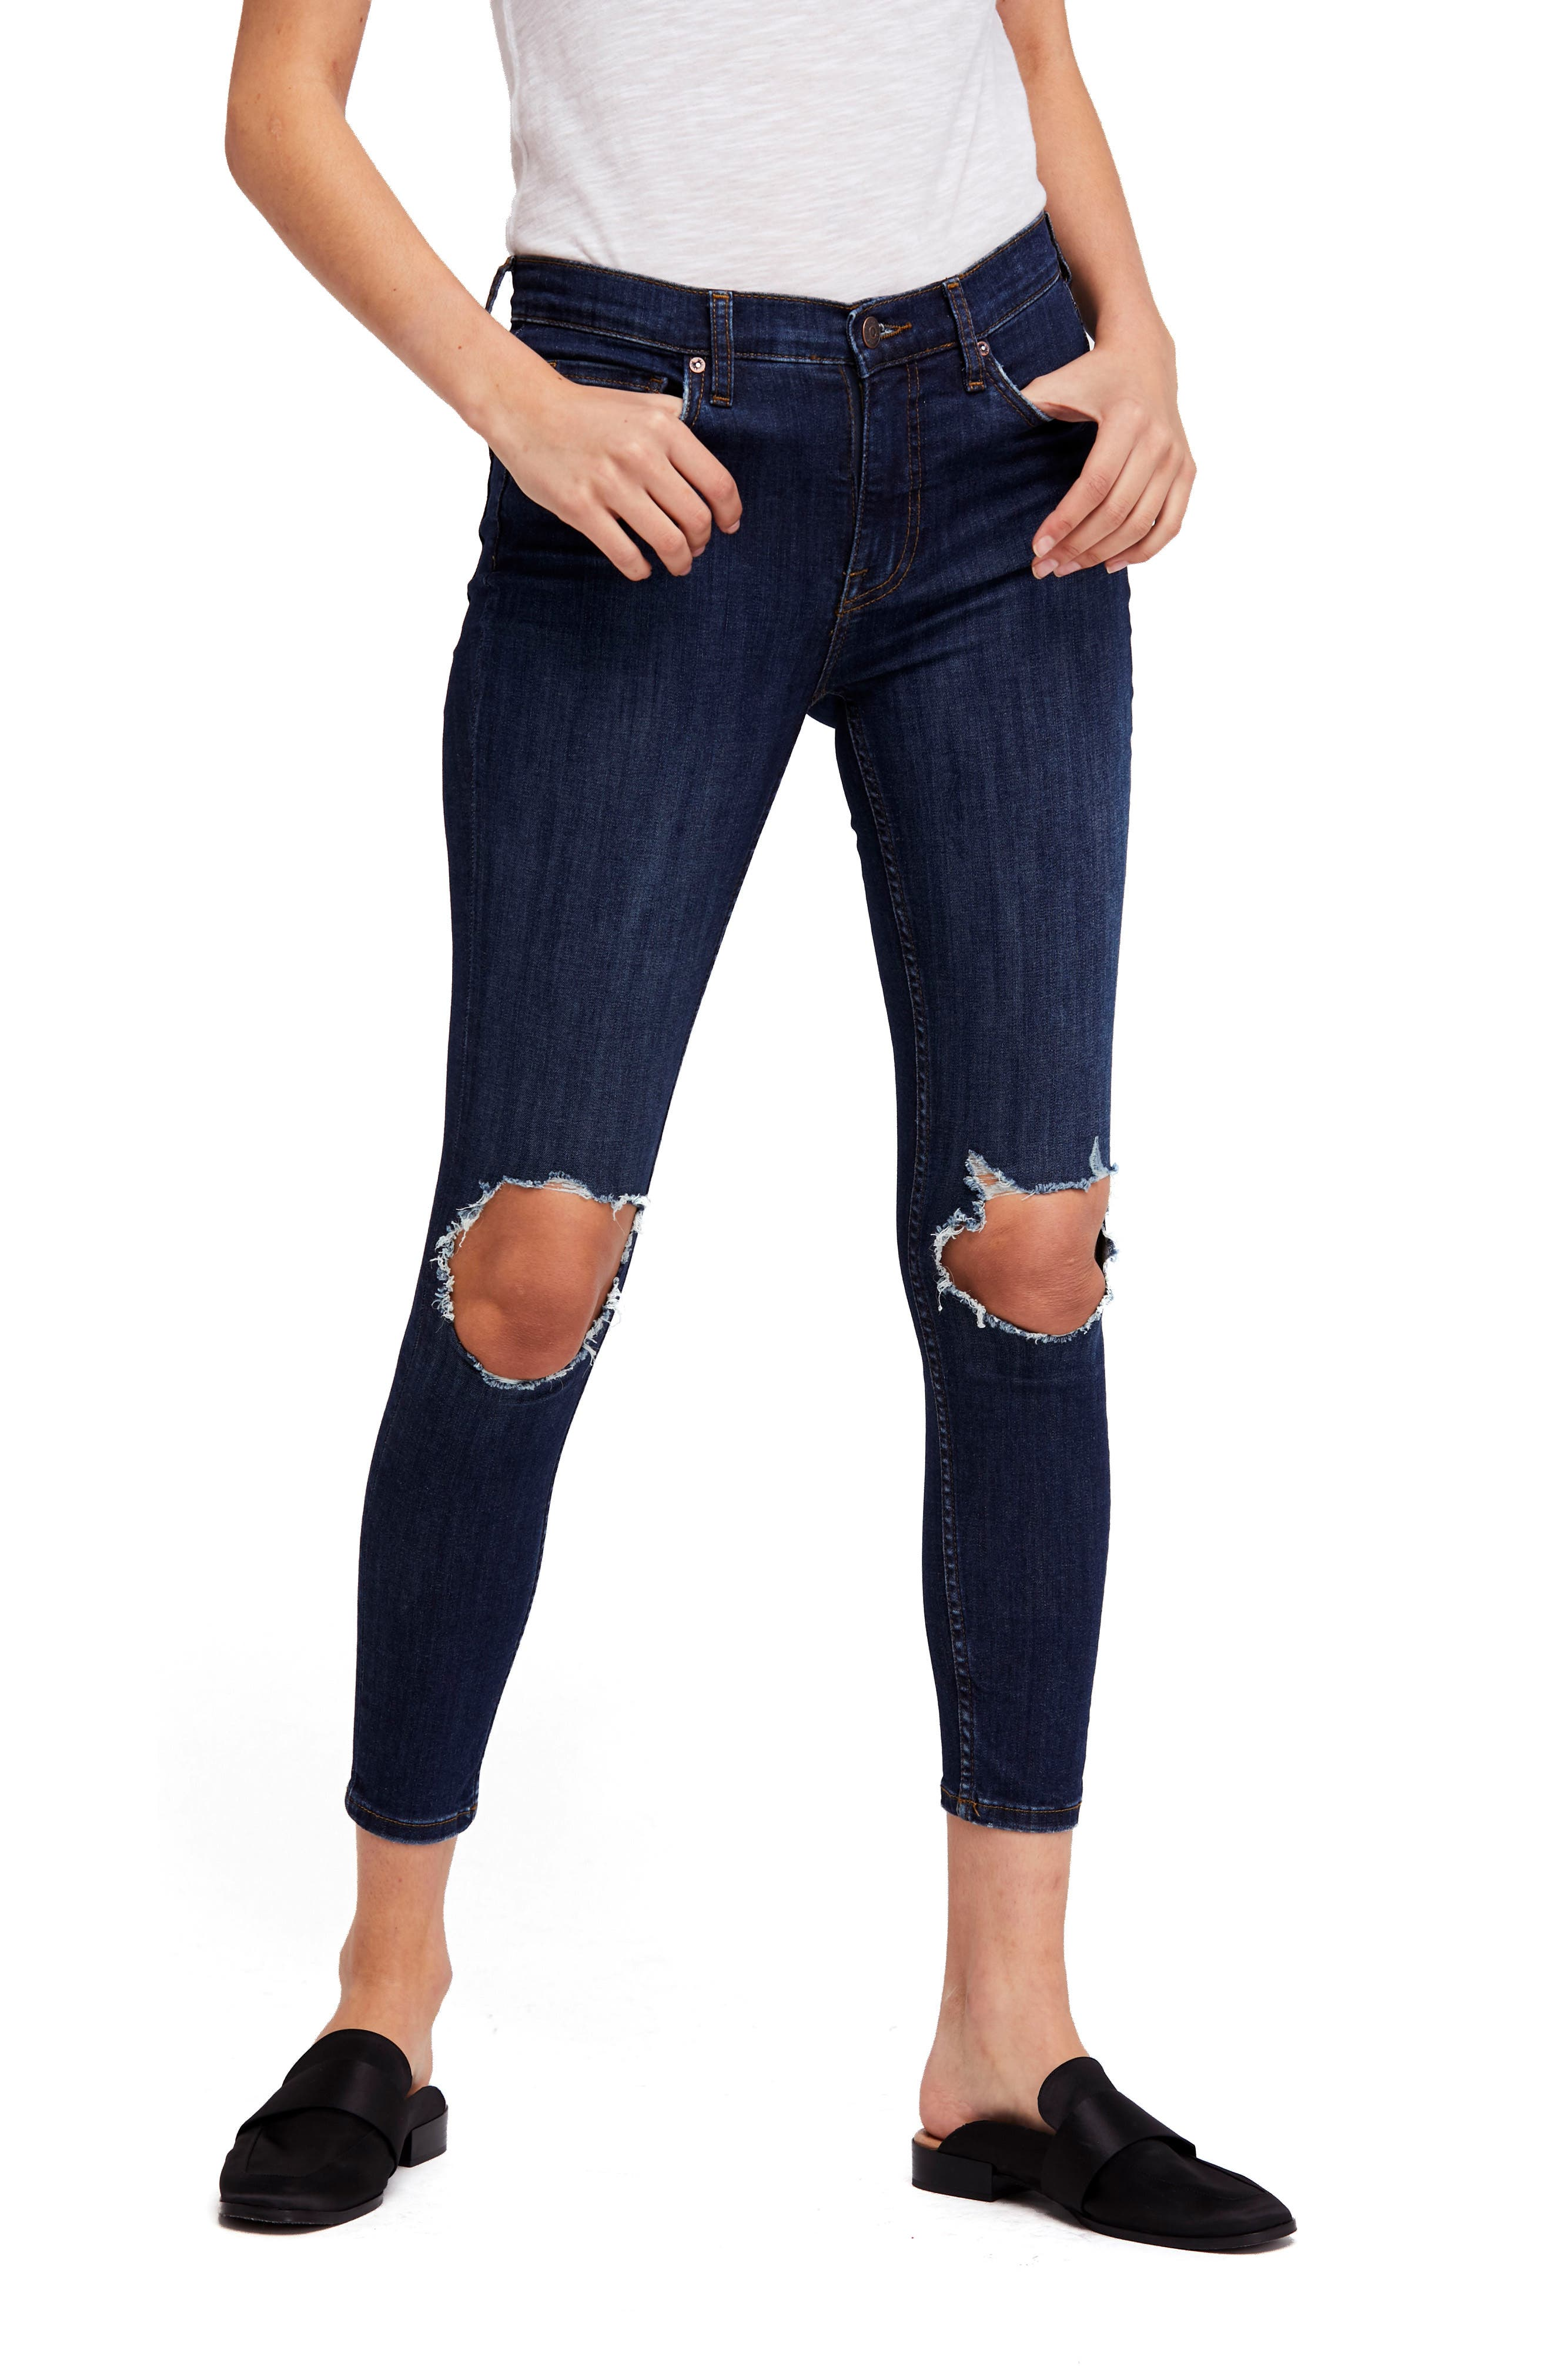 Alternate Image 1 Selected - Free People High Waist Ankle Skinny Jeans